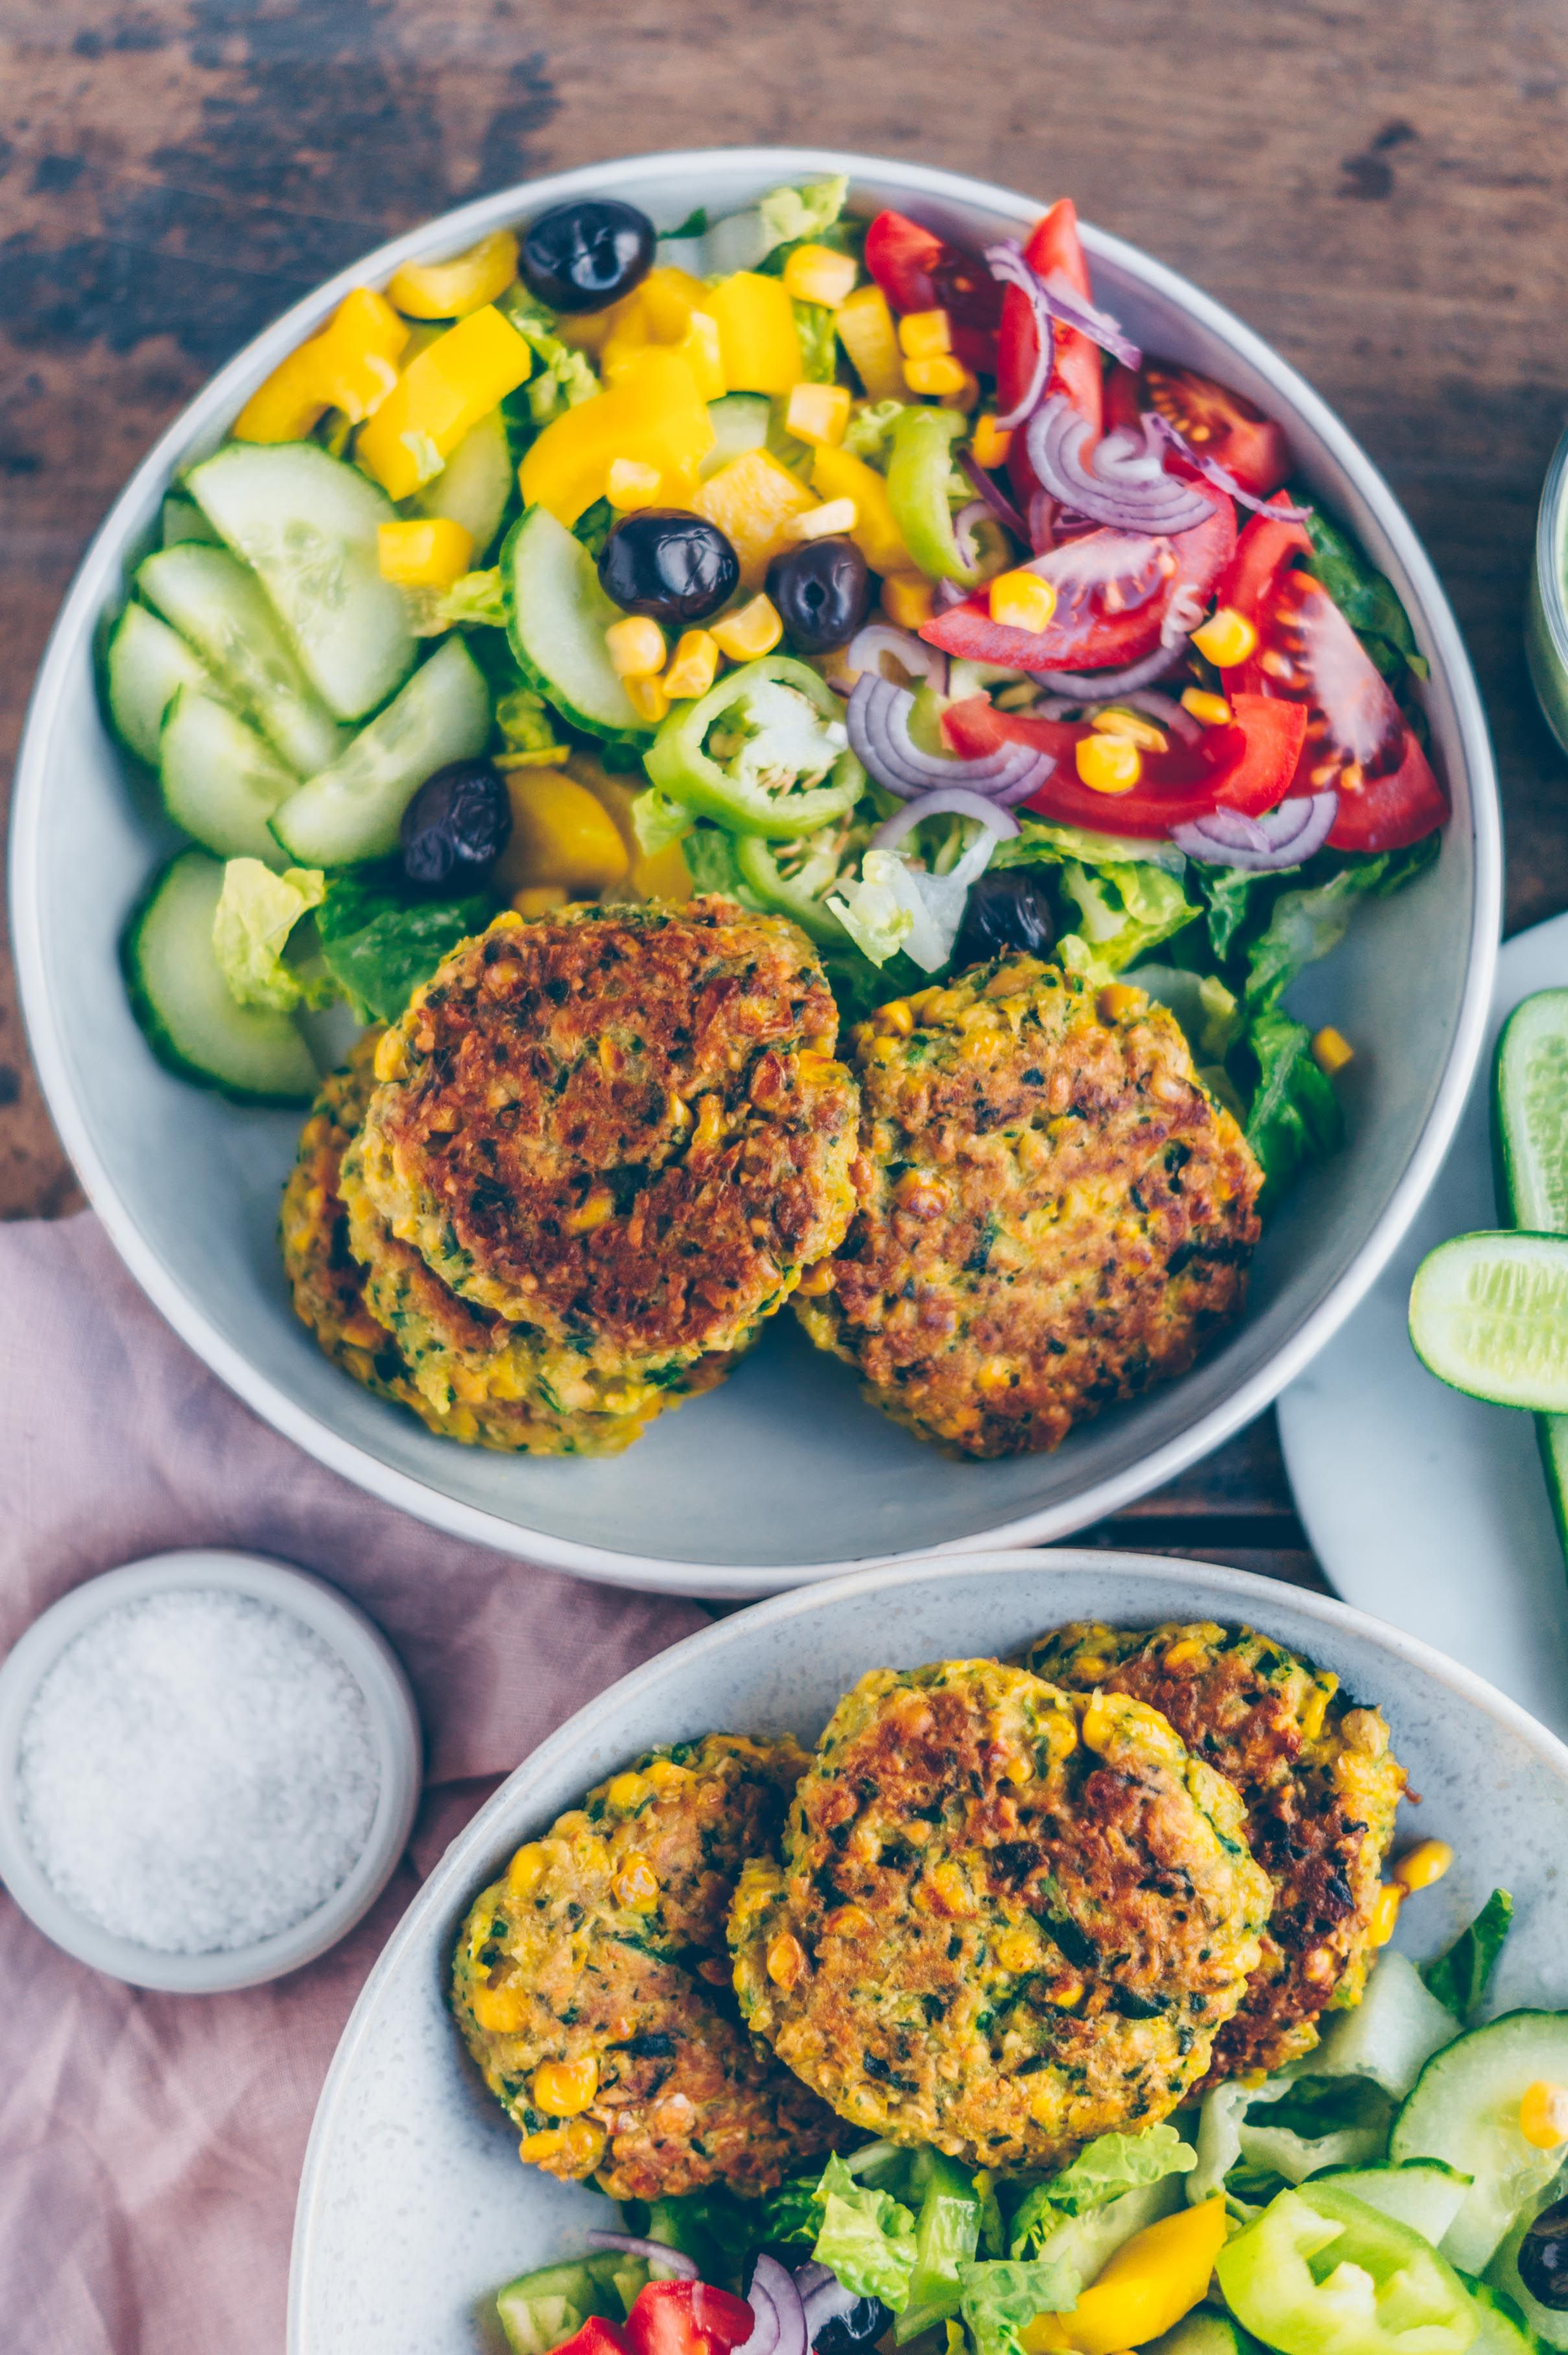 Crunchy Corn Patties With Spinach